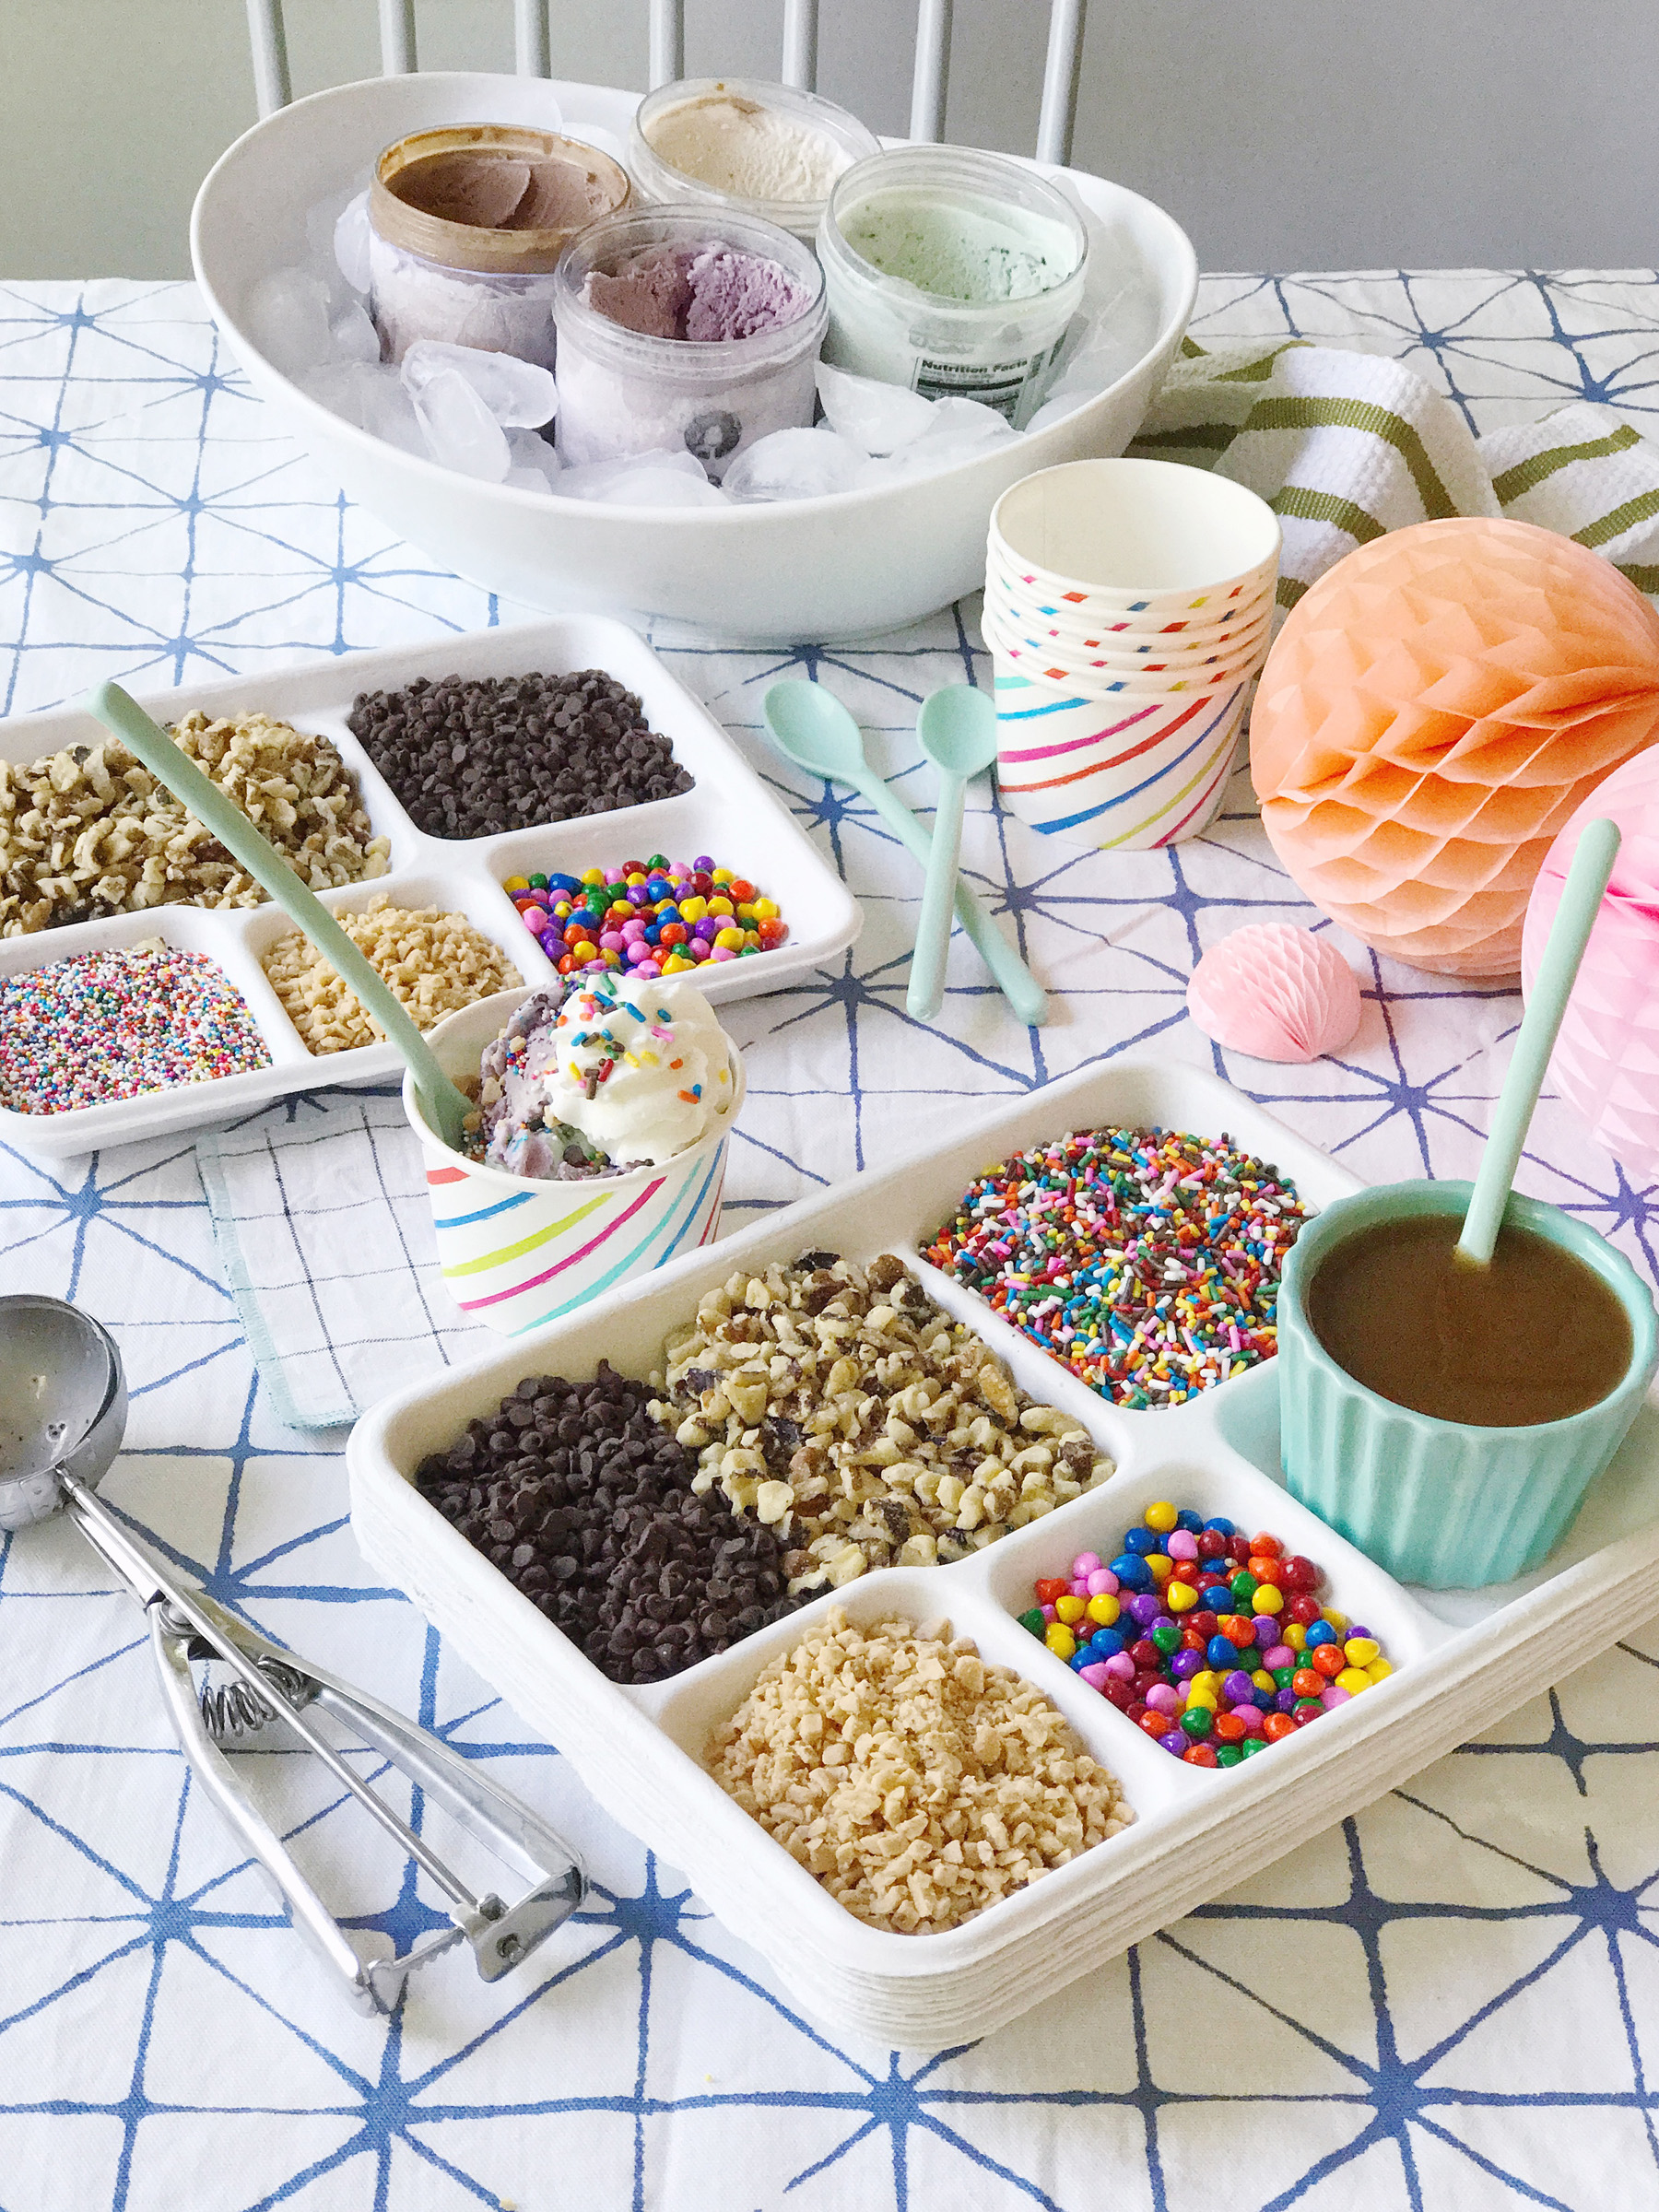 Display Your Toppings. Itu0027s Not A Sundae Without Tons Of Tasty Toppings! I  Love To See All Of The Pretty Sprinkles And Nuts And Candies Displayed For  A Big ...